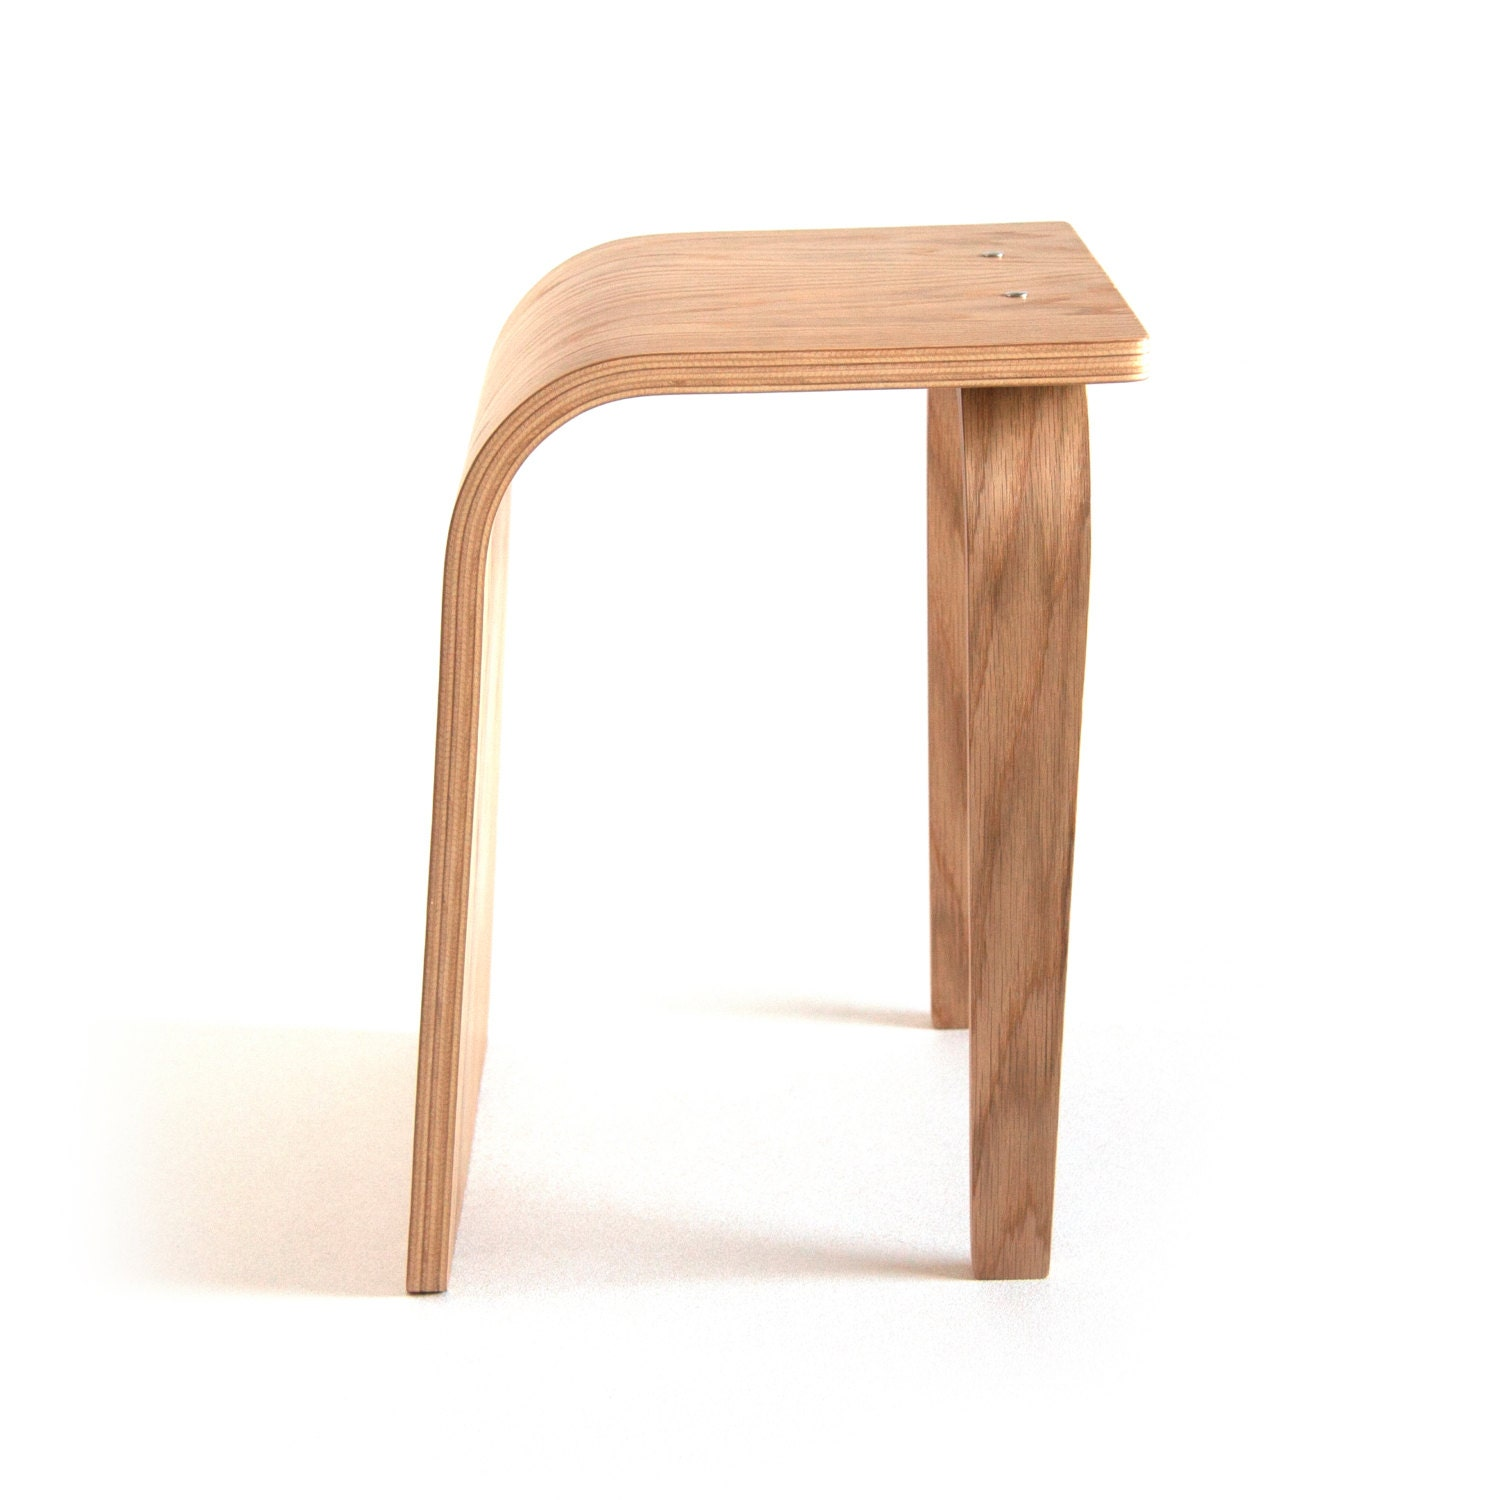 Stool Bent Plywood Wood Stool Wooden Stool Small Stool